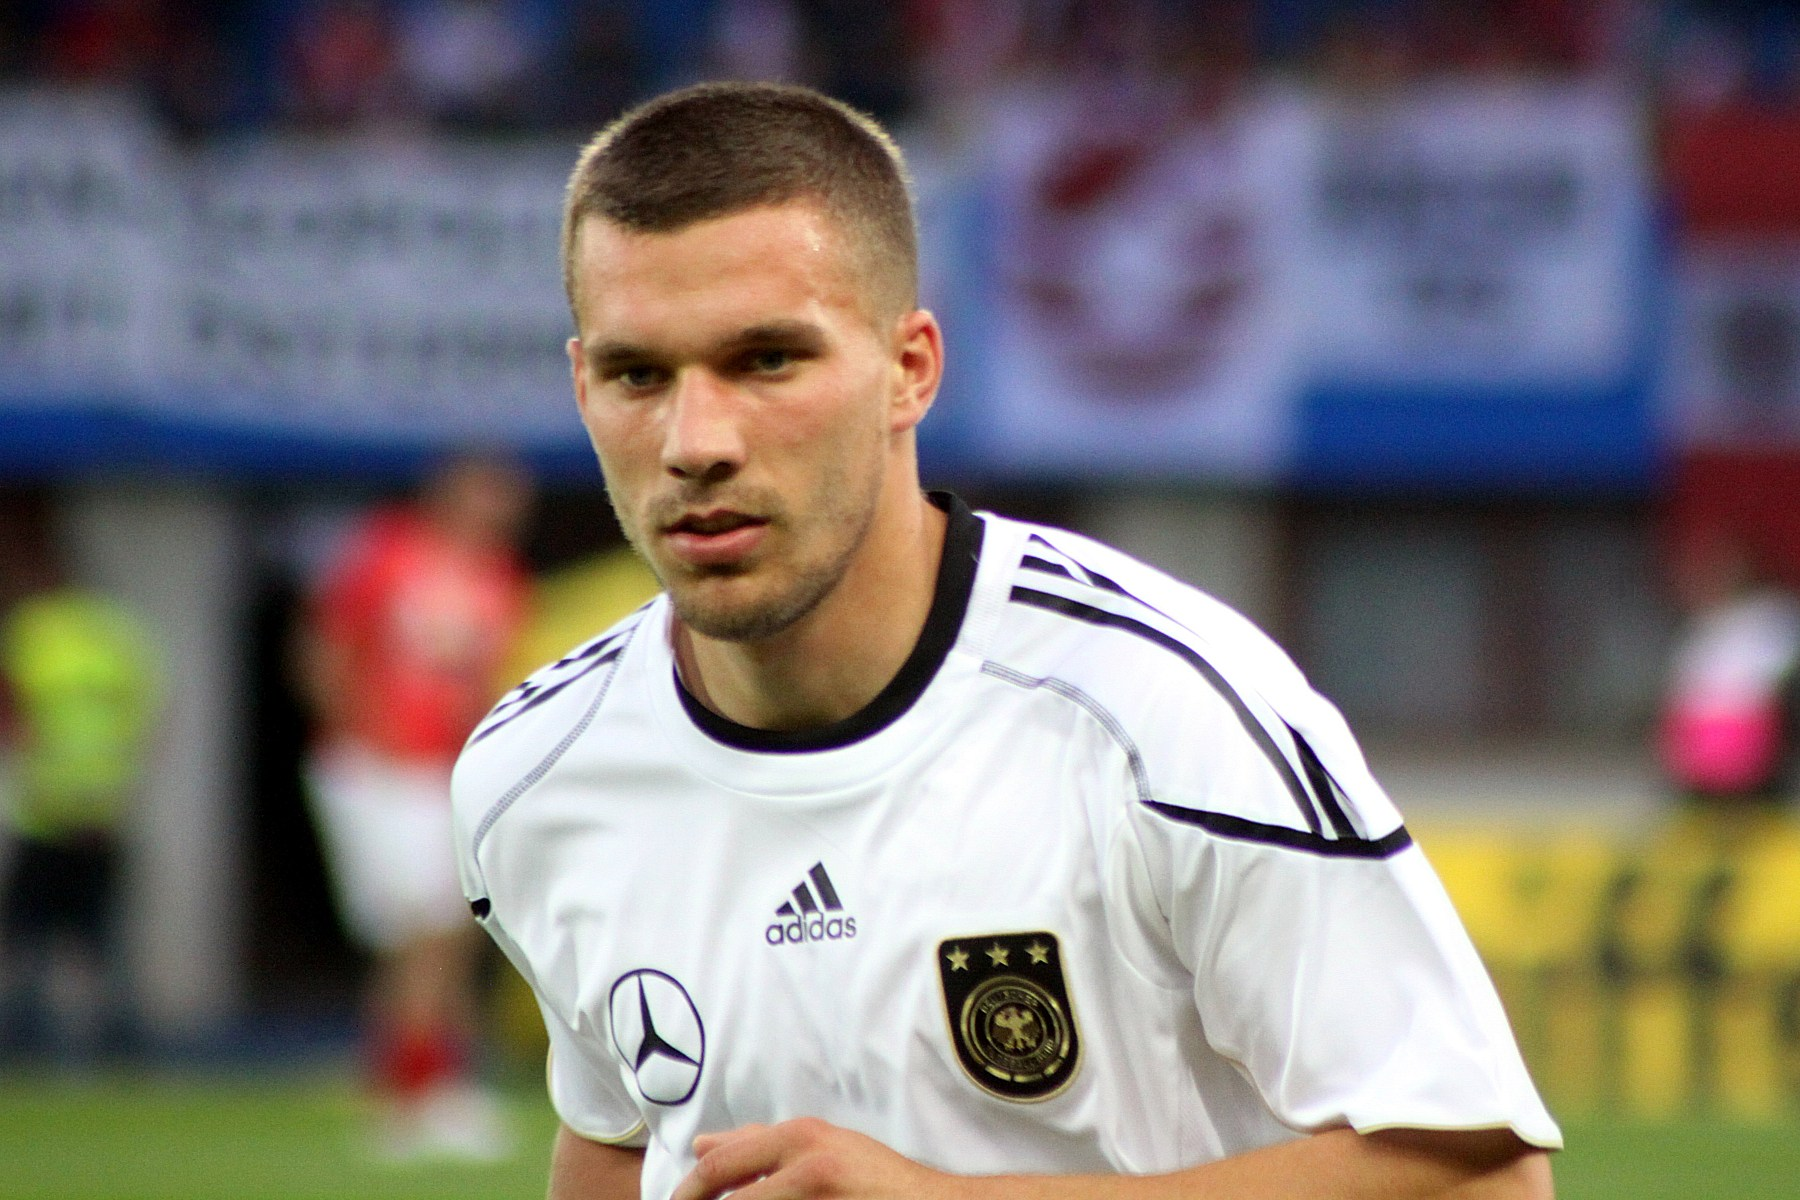 FileLukas Podolski Germany National Football Team 05